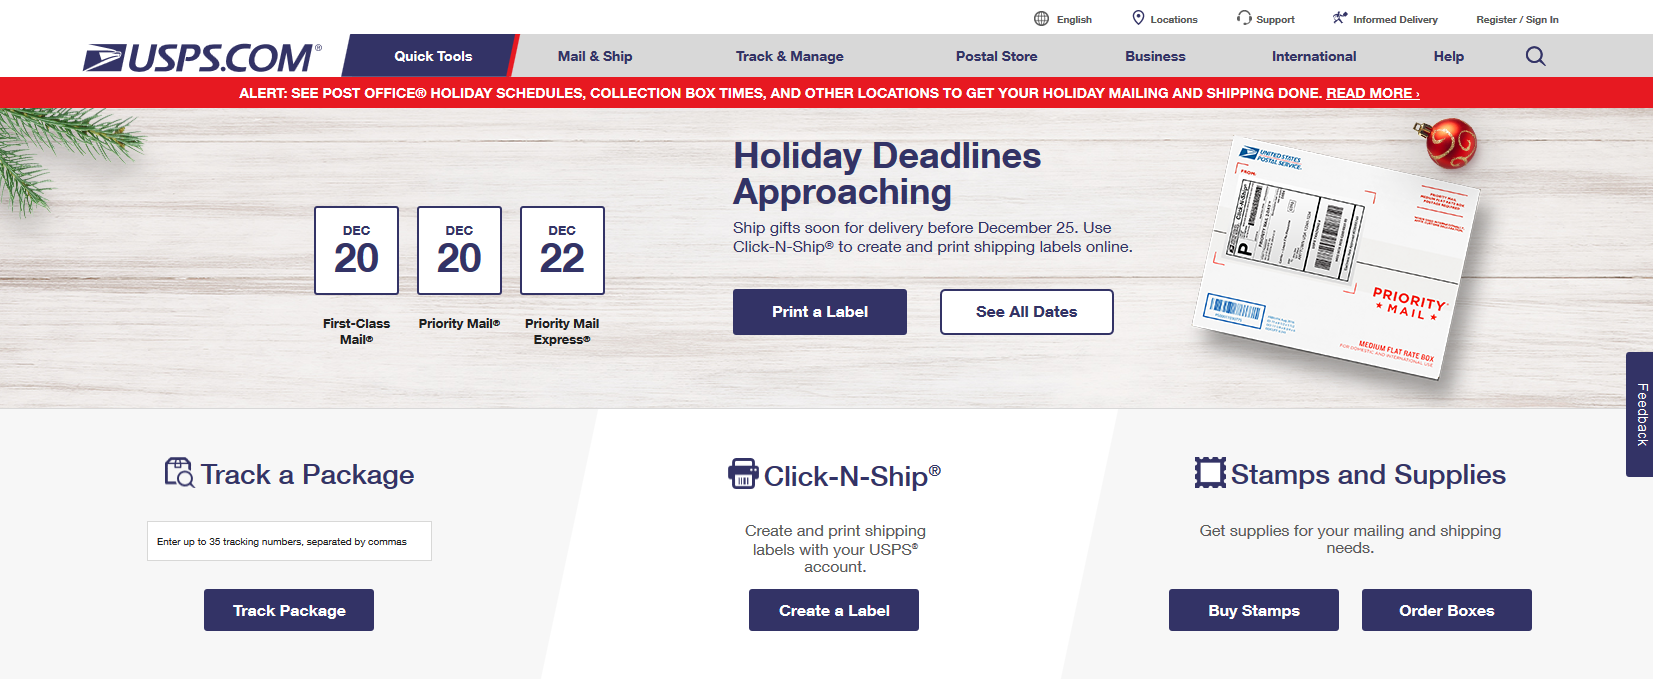 Time is running out to mail your holiday gifts | WBFO